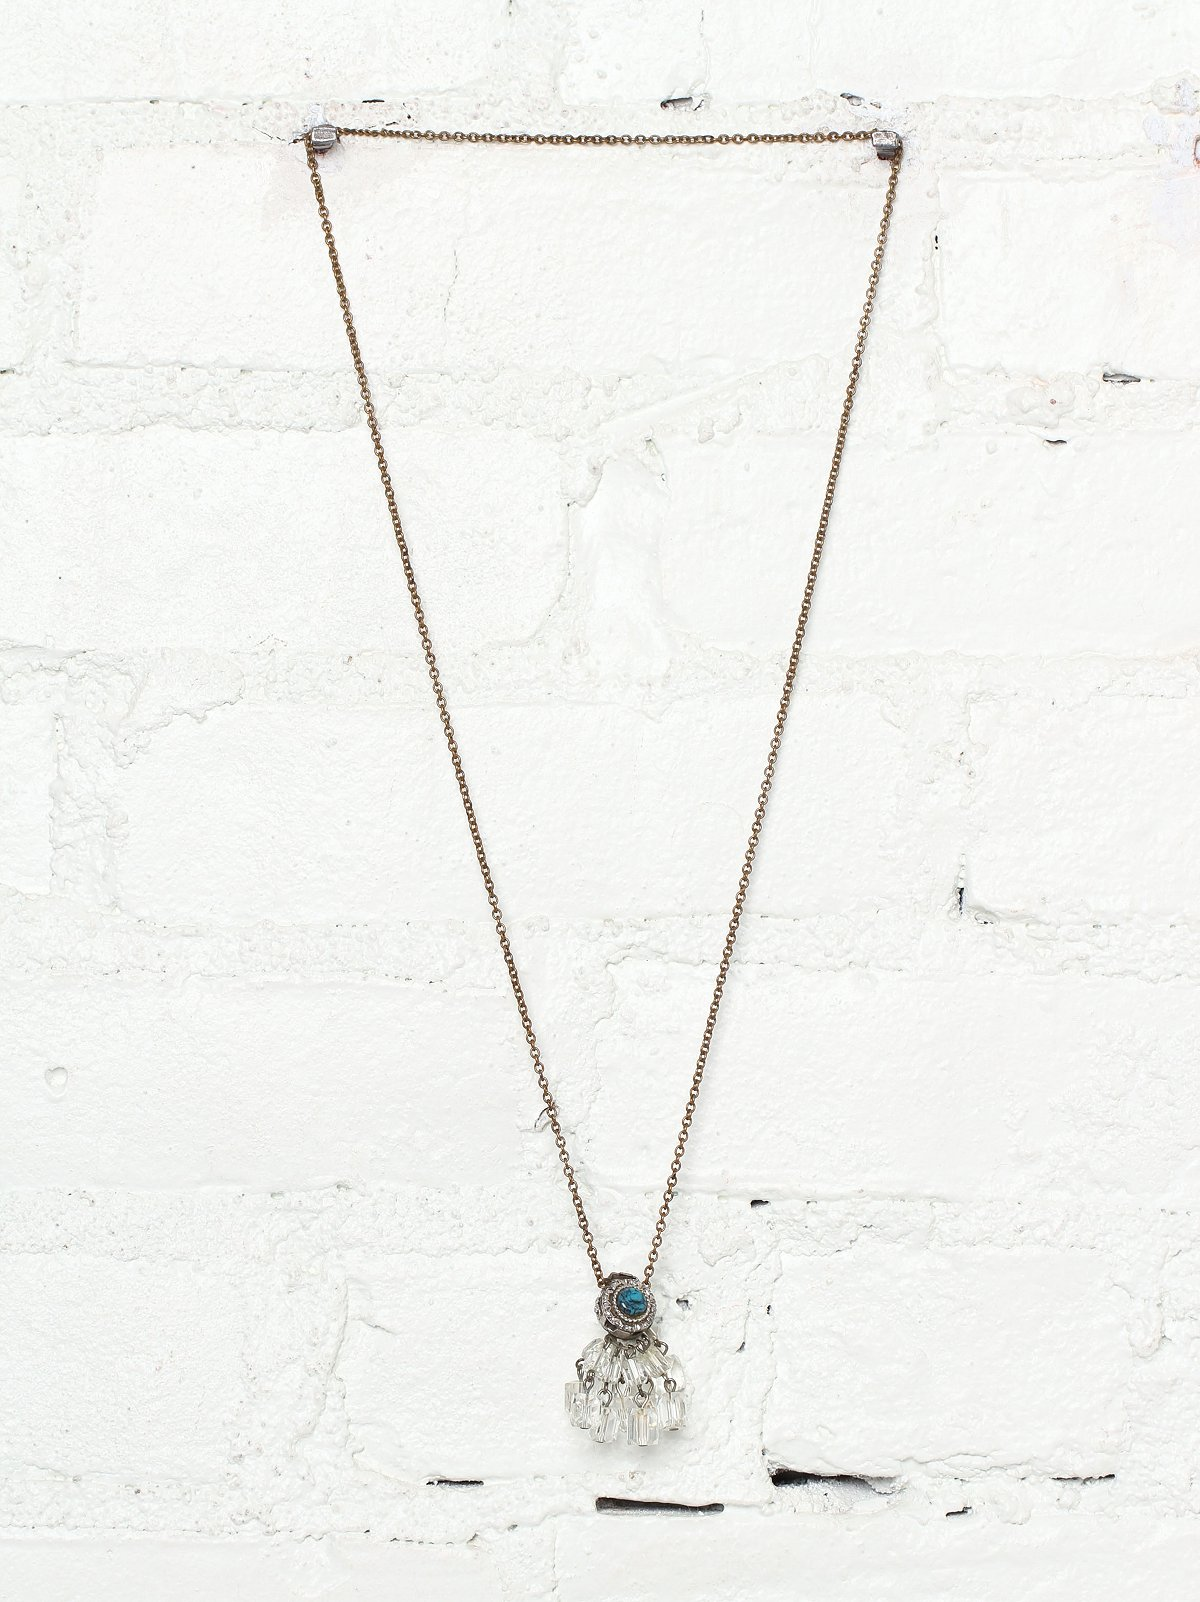 Vintage Handmade Dangling Crystal Necklace